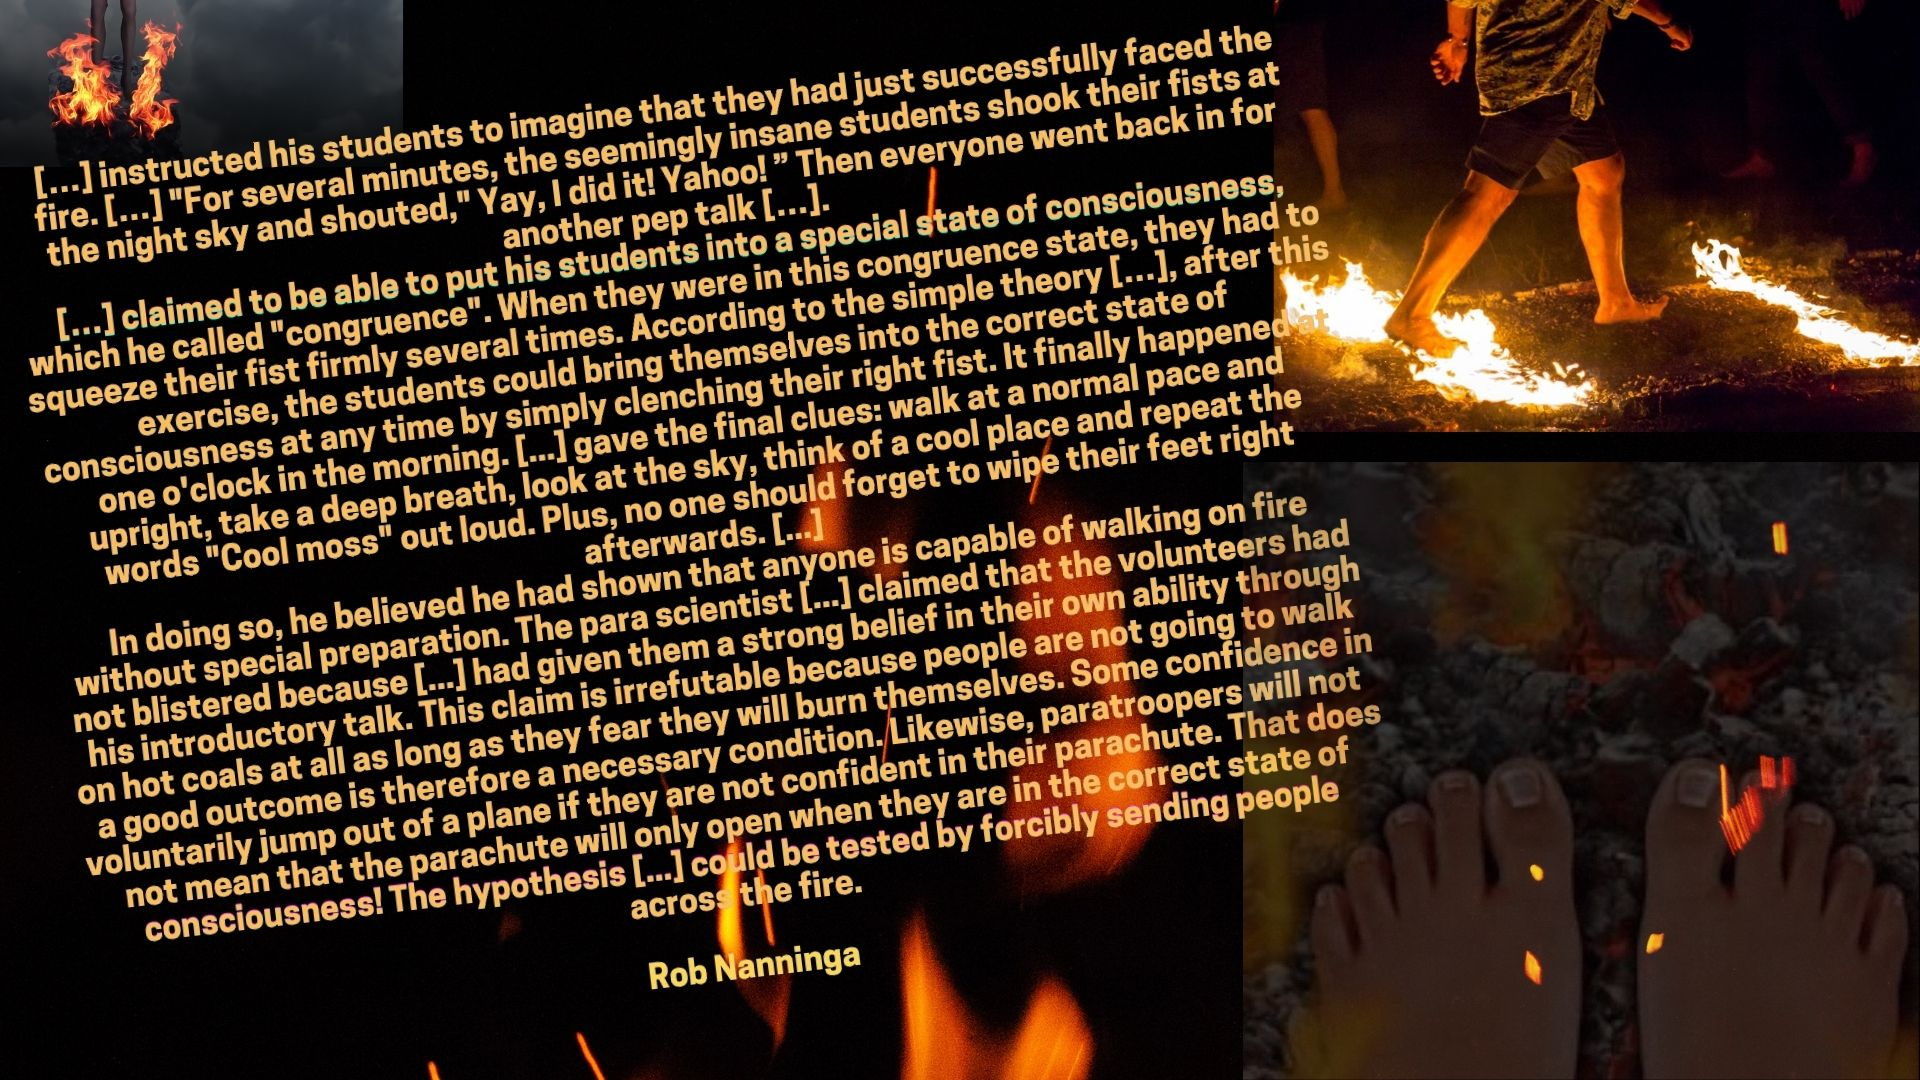 "Rob Nanninga quote: […] instructed his students to imagine that they had just successfully faced the fire. […] ""For several minutes, the seemingly insane students shook their fists at the night sky and shouted,"" Yay, I did it! Yahoo! "" Then everyone went back in for another pep talk […]. […] claimed to be able to put his students into a special state of consciousness, which he called ""congruence"". When they were in this congruence state, they had to squeeze their fist firmly several times. According to the simple theory […], after this exercise, the students could bring themselves into the correct state of consciousness at any time by simply clenching their right fist. It finally happened at one o'clock in the morning. [...] gave the final clues: walk at a normal pace and upright, take a deep breath, look at the sky, think of a cool place and repeat the words ""Cool moss"" out loud. Plus, no one should forget to wipe their feet right afterwards. [...] In doing so, he believed he had shown that anyone is capable of walking on fire without special preparation. The para scientist [...] claimed that the volunteers had not blistered because [...] had given them a strong belief in their own ability through his introductory talk. This claim is irrefutable because people are not going to walk on hot coals at all as long as they fear they will burn themselves. Some confidence in a good outcome is therefore a necessary condition. Likewise, paratroopers will not voluntarily jump out of a plane if they are not confident in their parachute. That does not mean that the parachute will only open when they are in the correct state of consciousness! The hypothesis [...] could be tested by forcibly sending people across the fire.  Rob Nanninga"